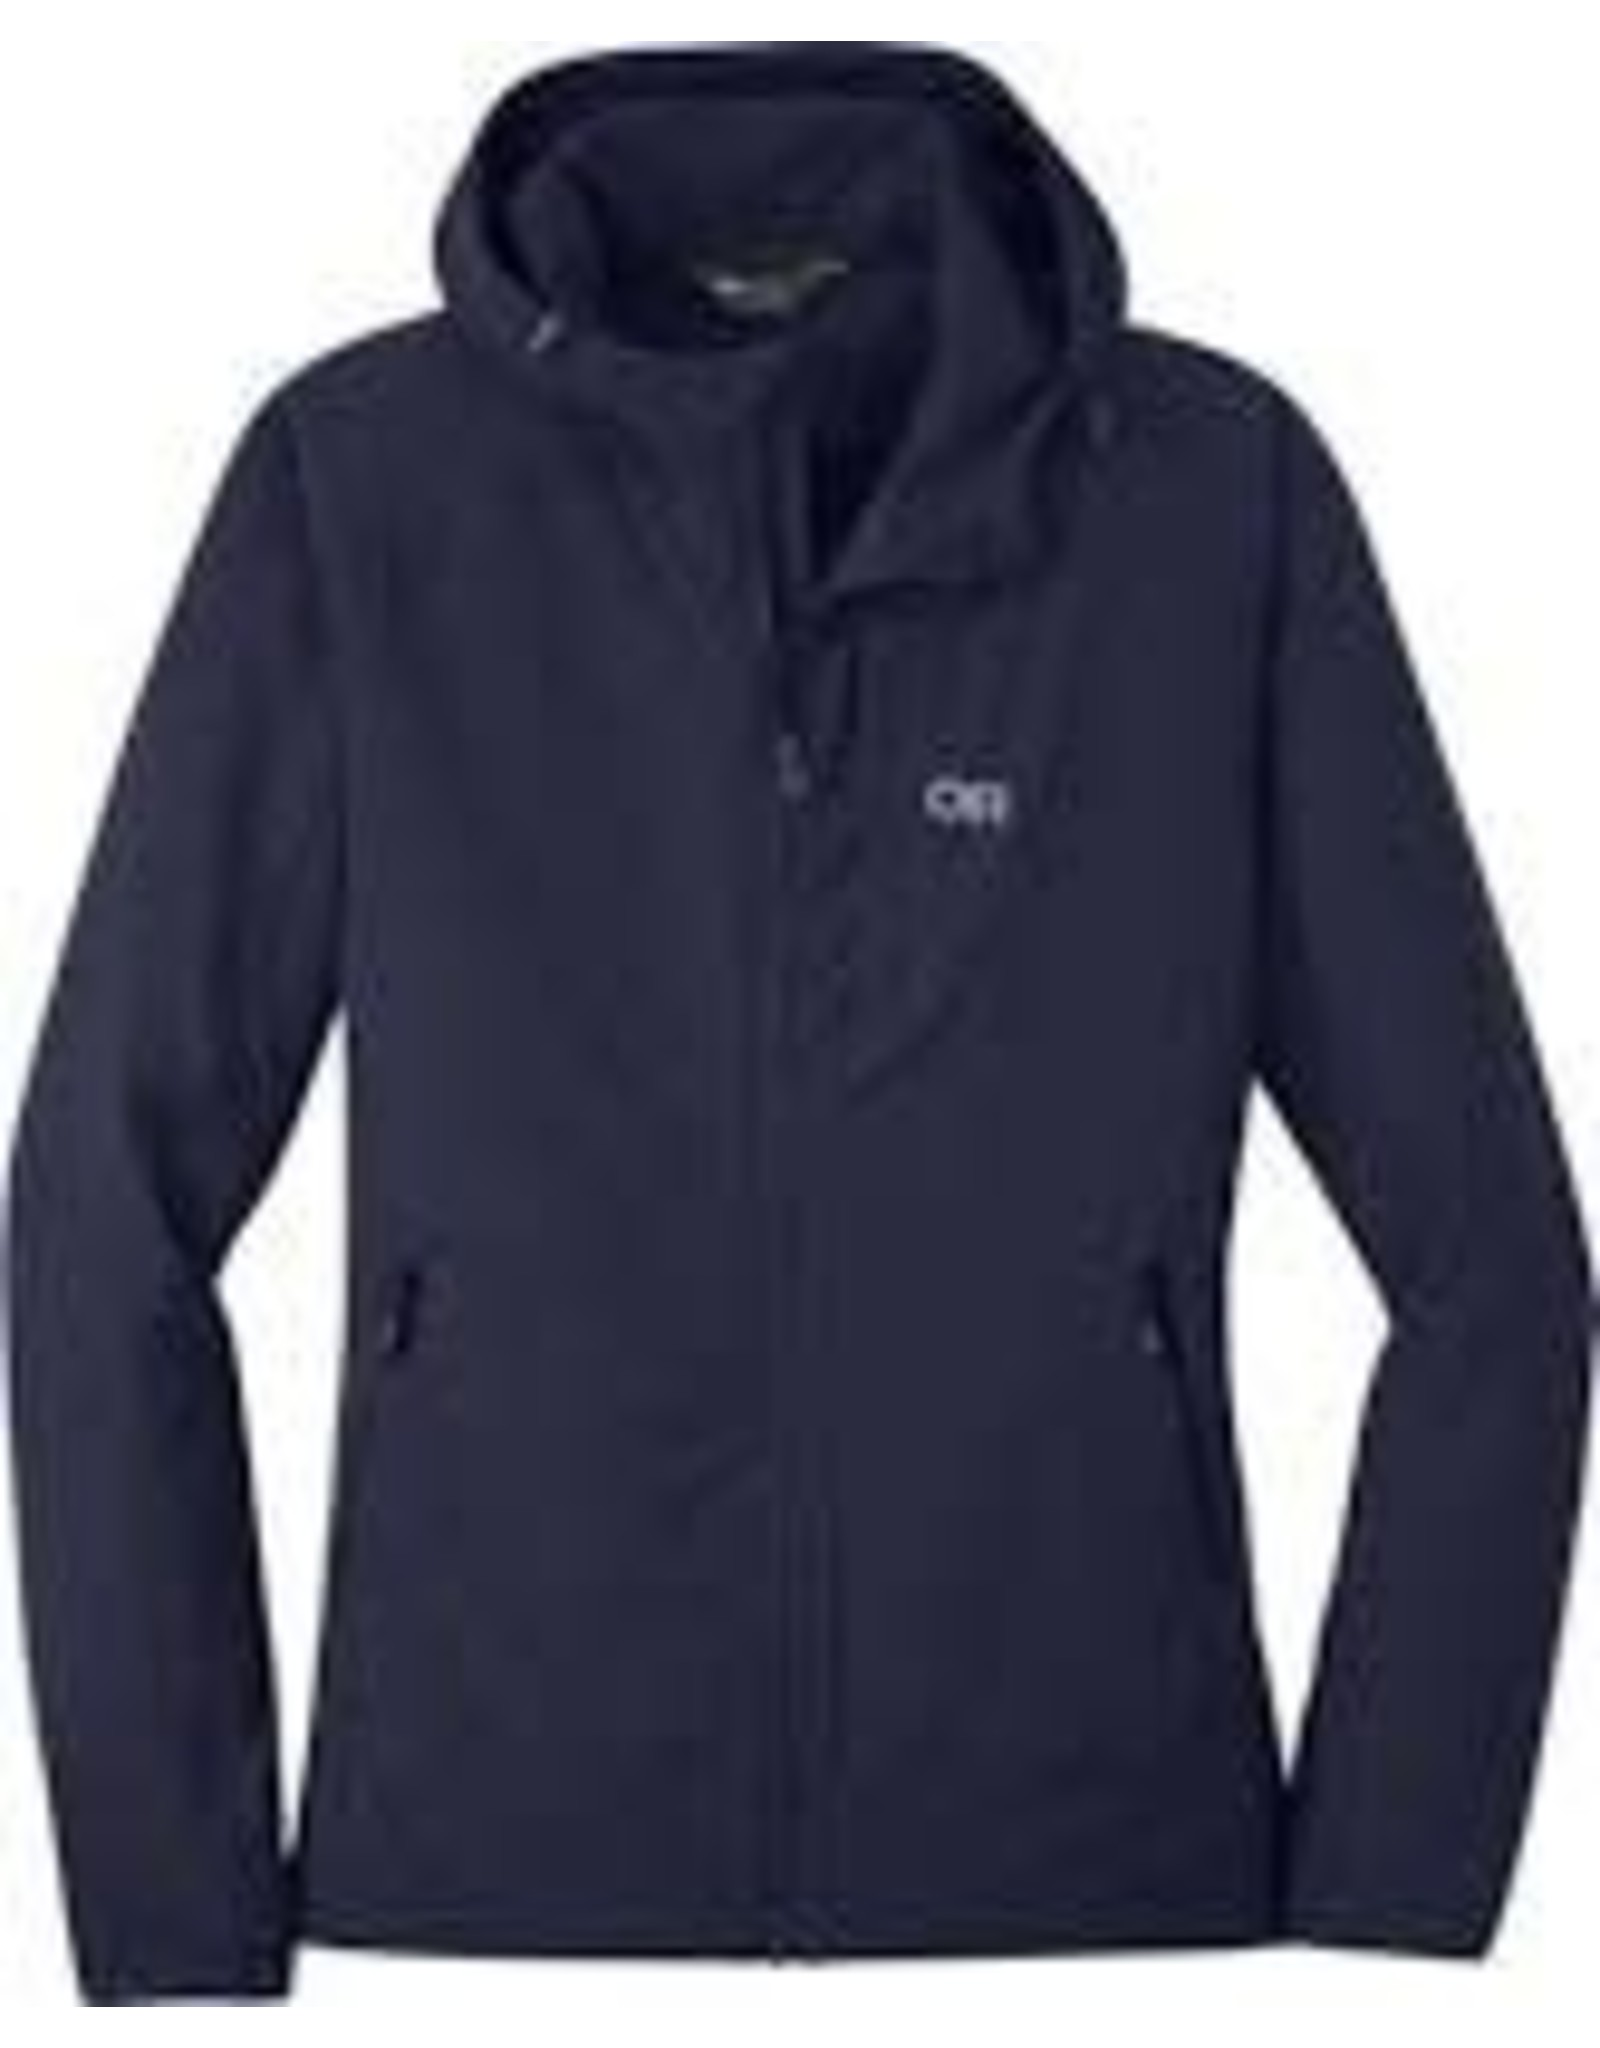 Outdoor Research Outdoor Research Wmn's Ferrosi Hoodie Naval Blue XL